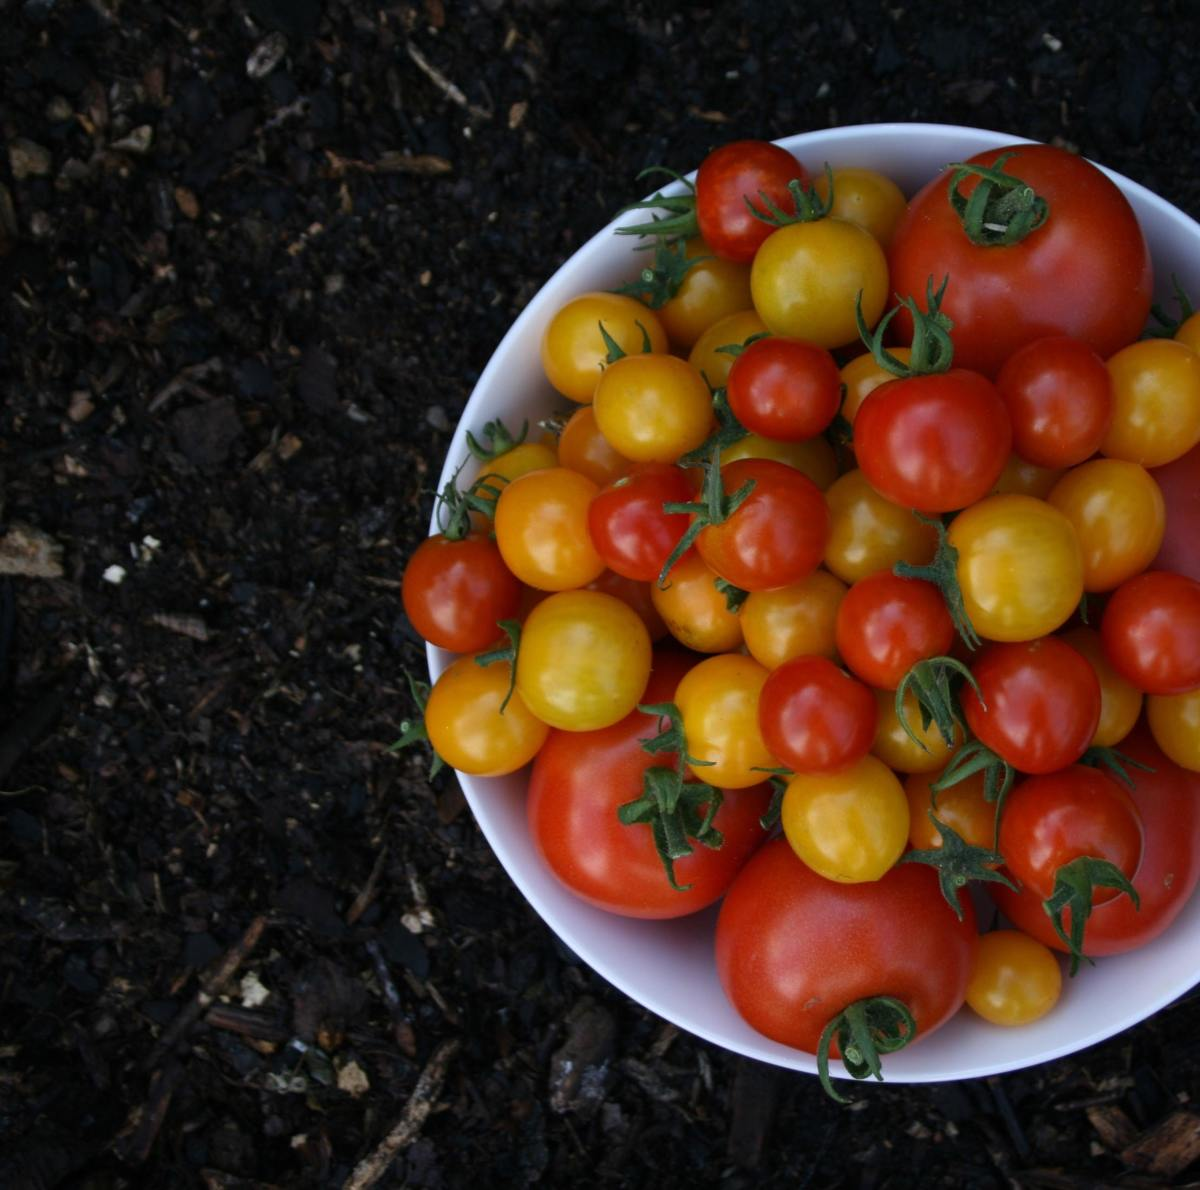 Choosing the right tomato variety for your taste (and zone) makes a huge difference.